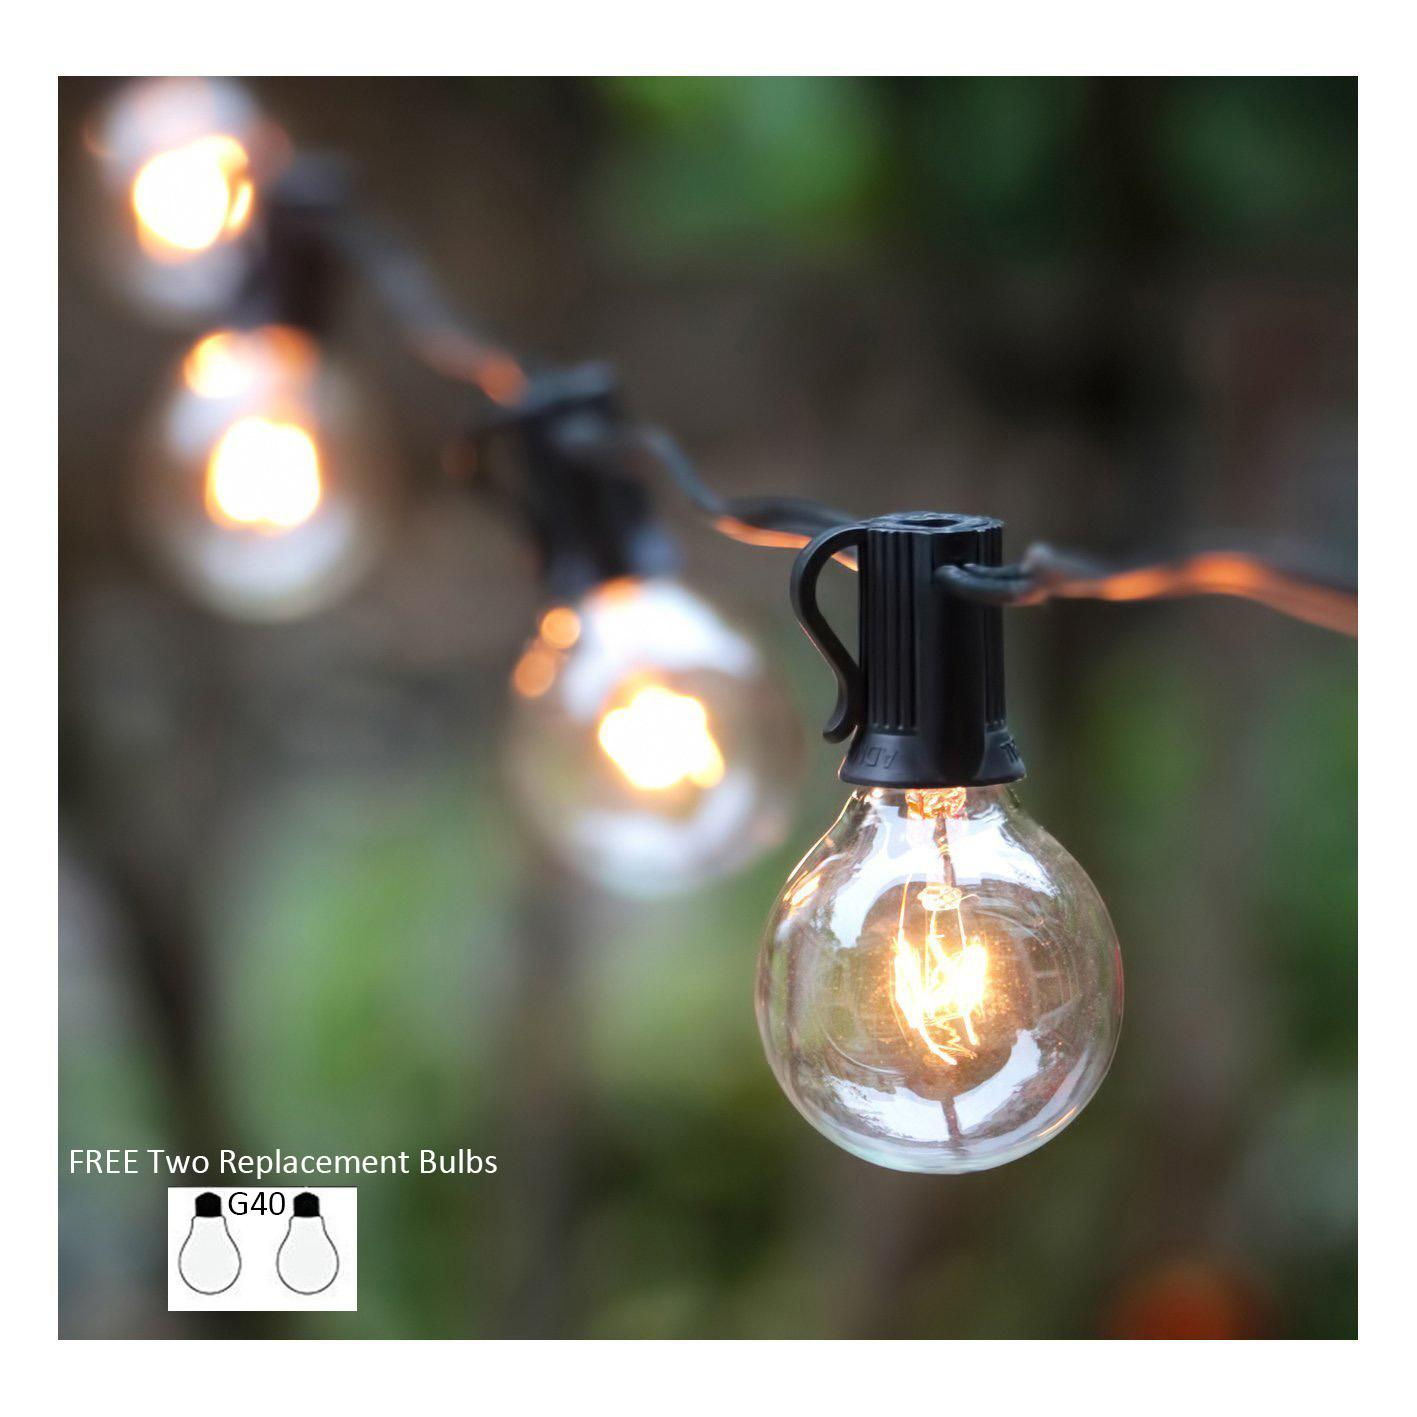 Icoco 5m 50 Led Love Heart String Light Battery Operated Copper Wire Home Decor Light Festival Fairy Light For Wedding Party And To Have A Long Life. Outdoor Lighting Lighting Strings